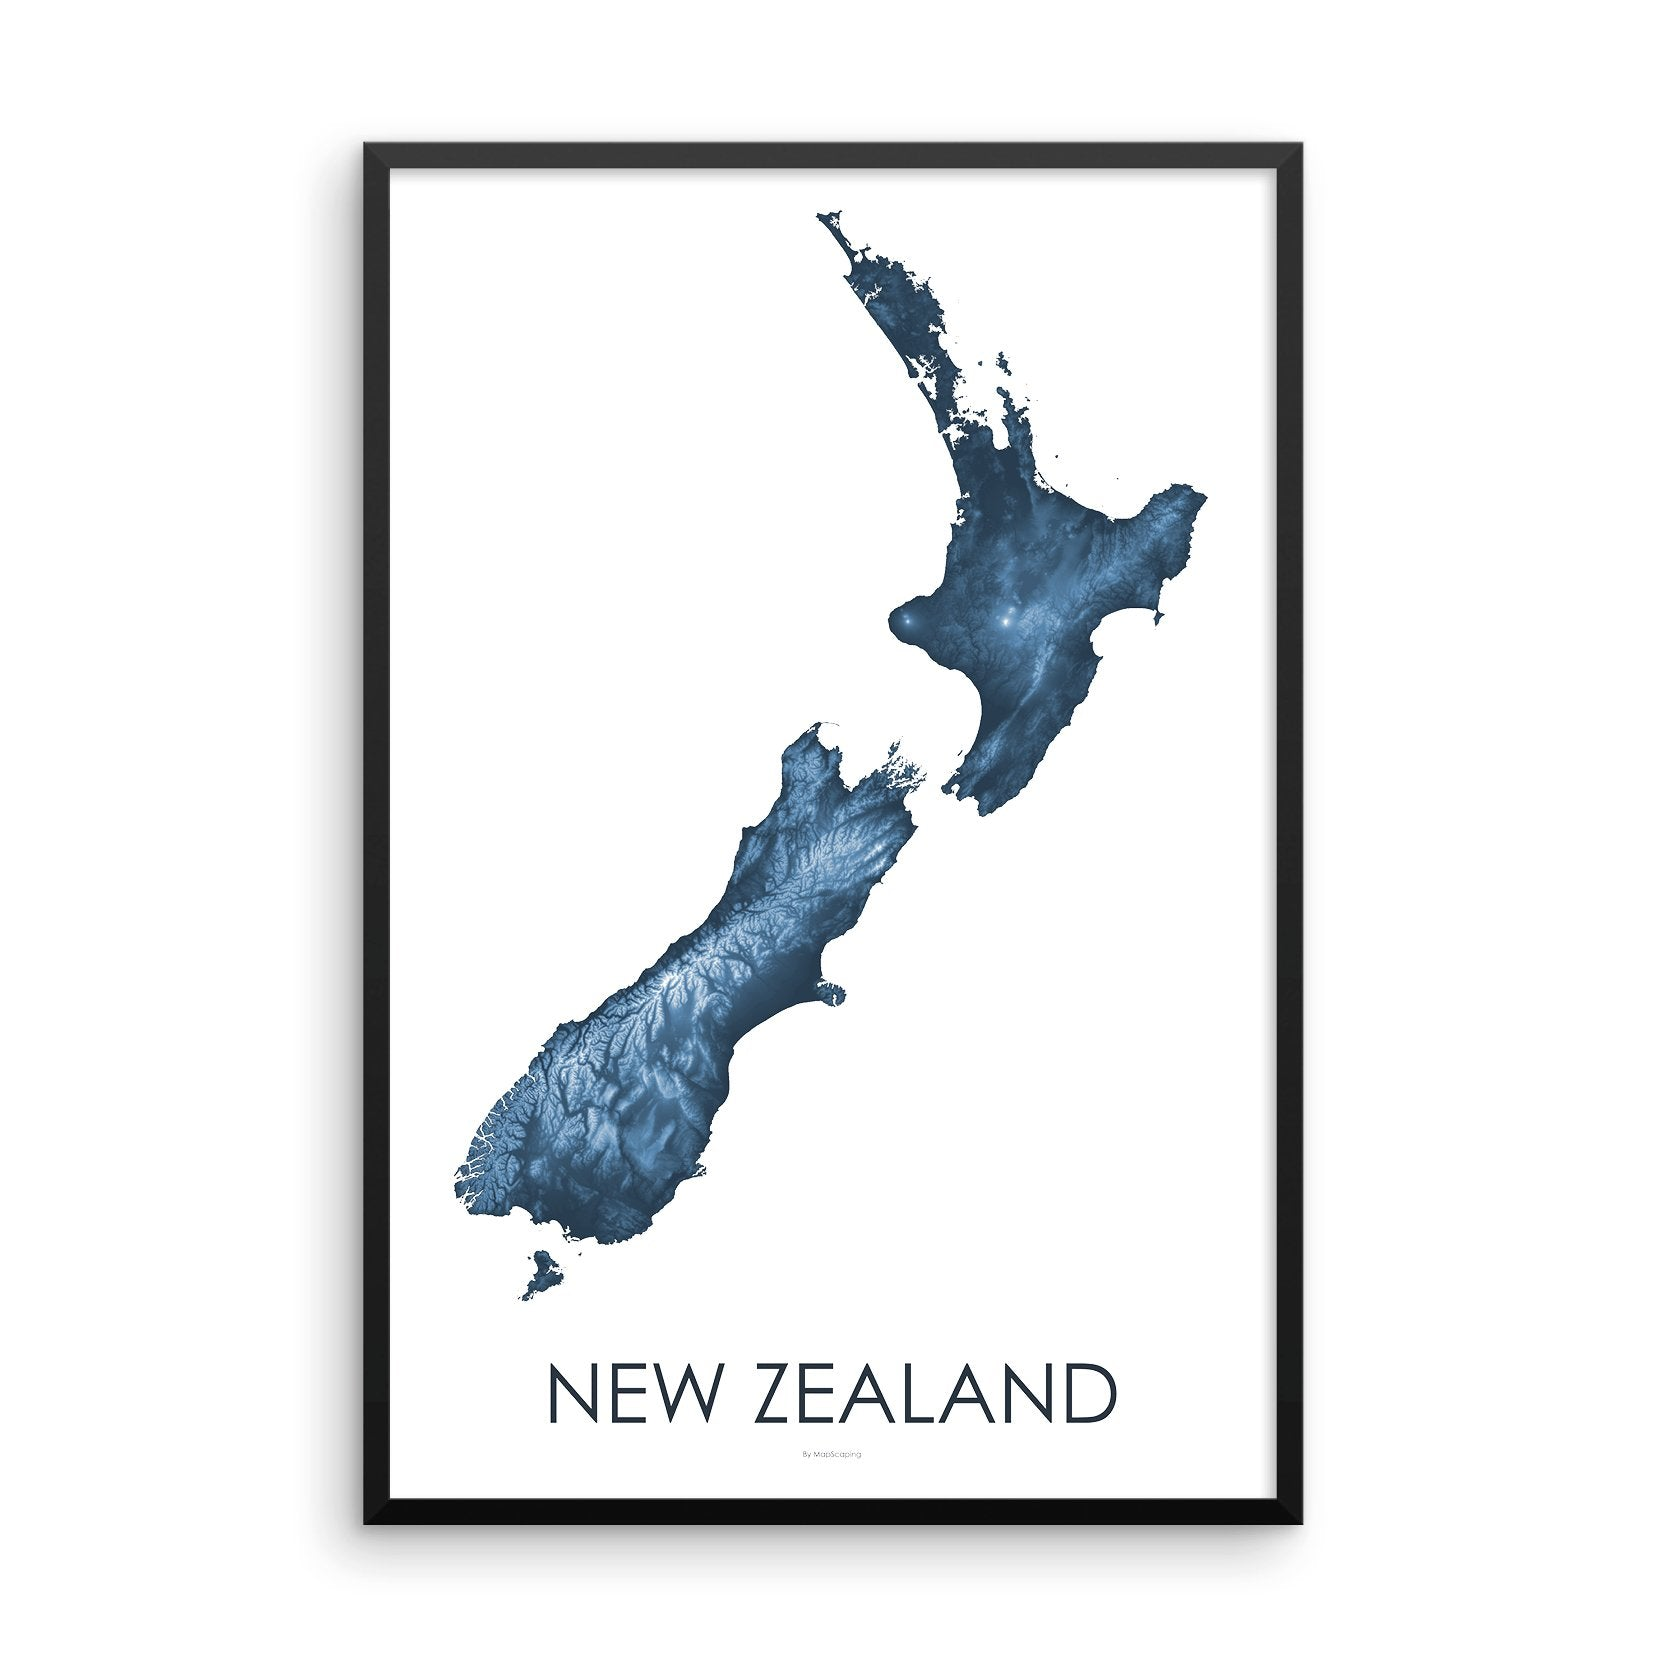 Framed blue poster map of New Zealand's North and South Islands, detailed map print showing the mountains of New Zealand's landscape.